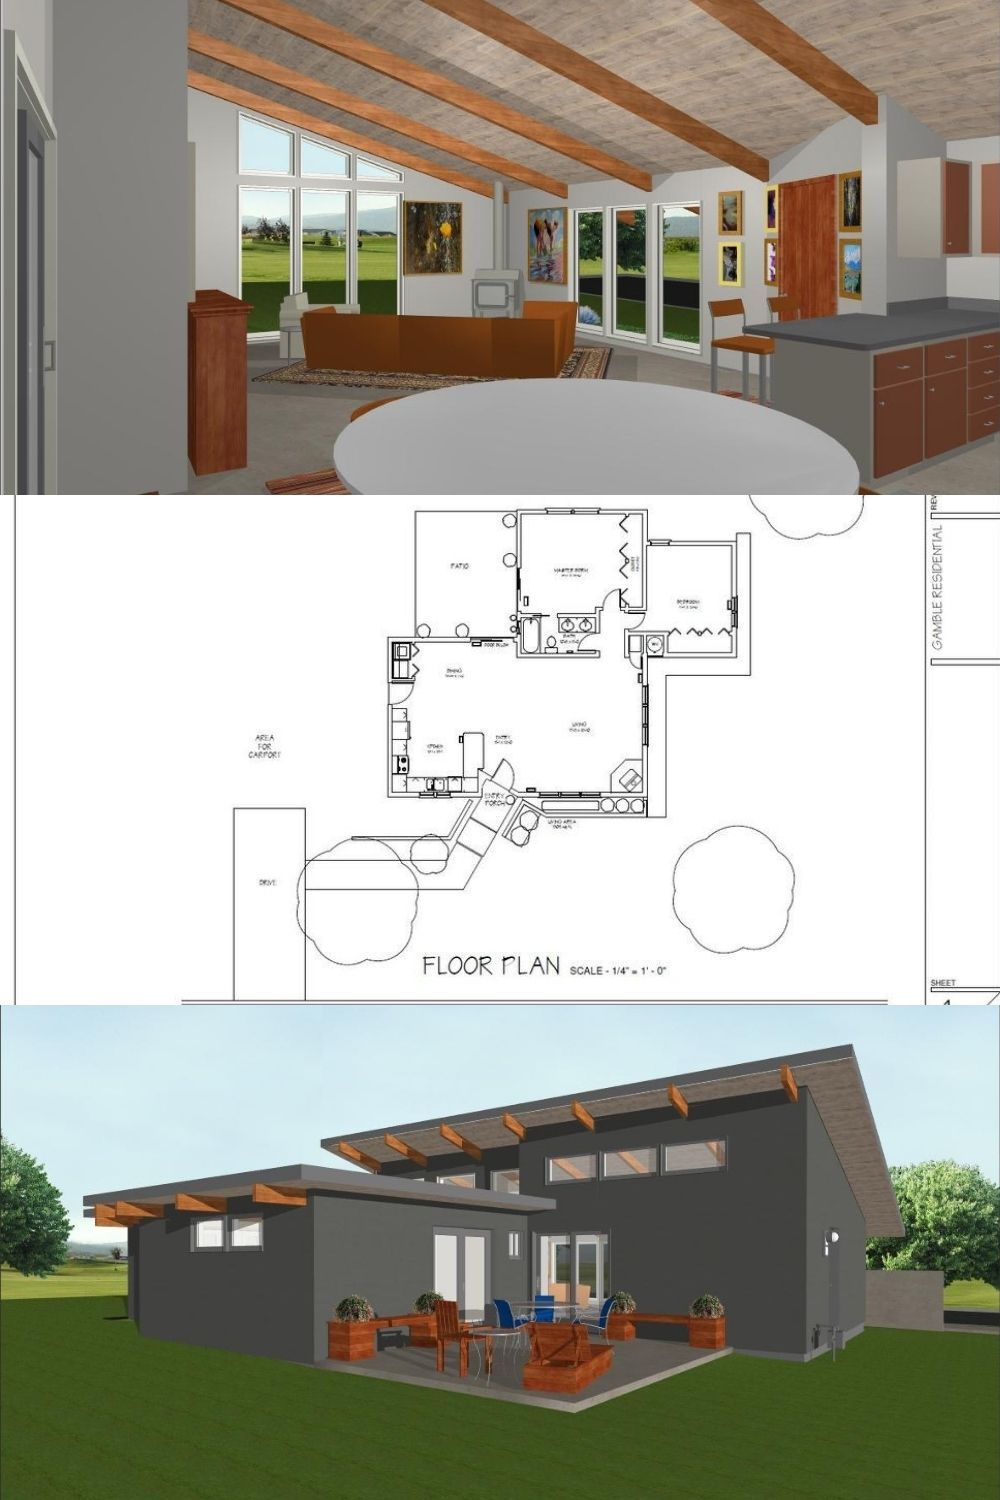 Feather Reed House Plans House Plans House Design House